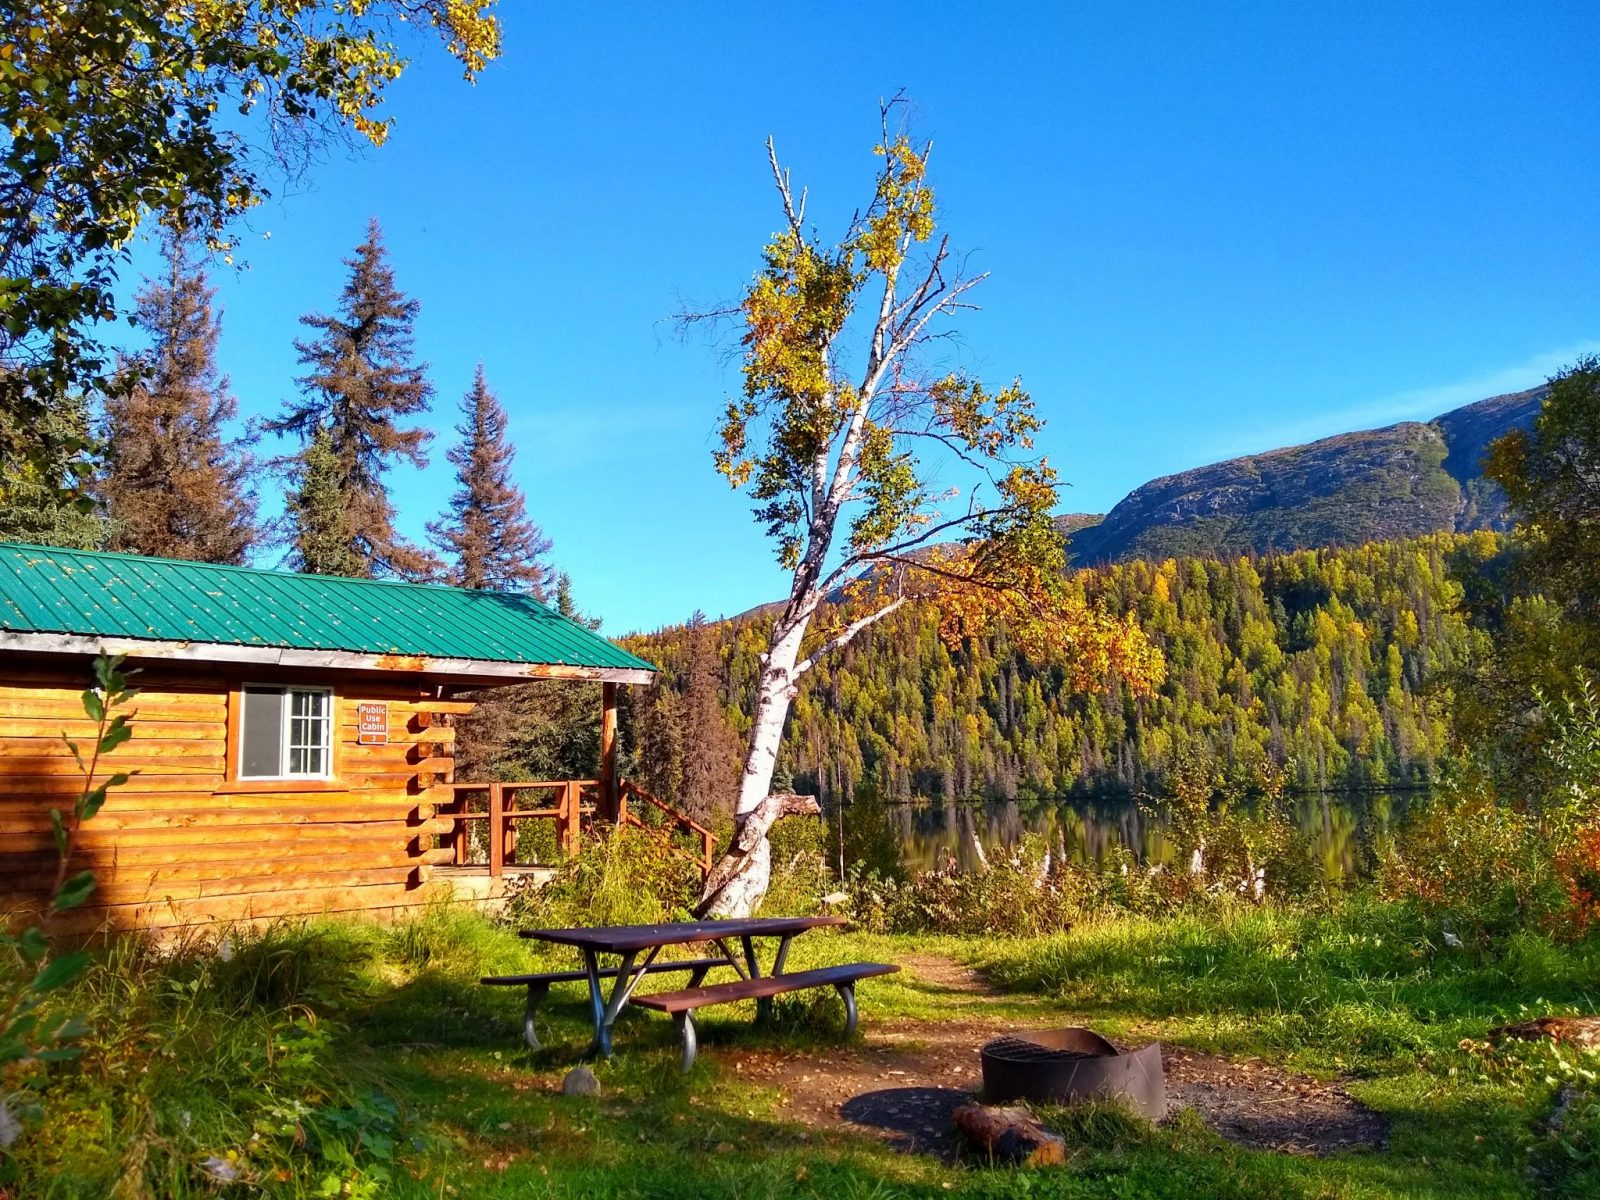 Camping in Alaska at the Byers Lake Cabin in Denali State park. It's a log cabin with an open window, a green metal roof and a porch with a railing facing a calm lake. The lake is surrounded by trees and there is a fire ring and a picnic table in the foreground